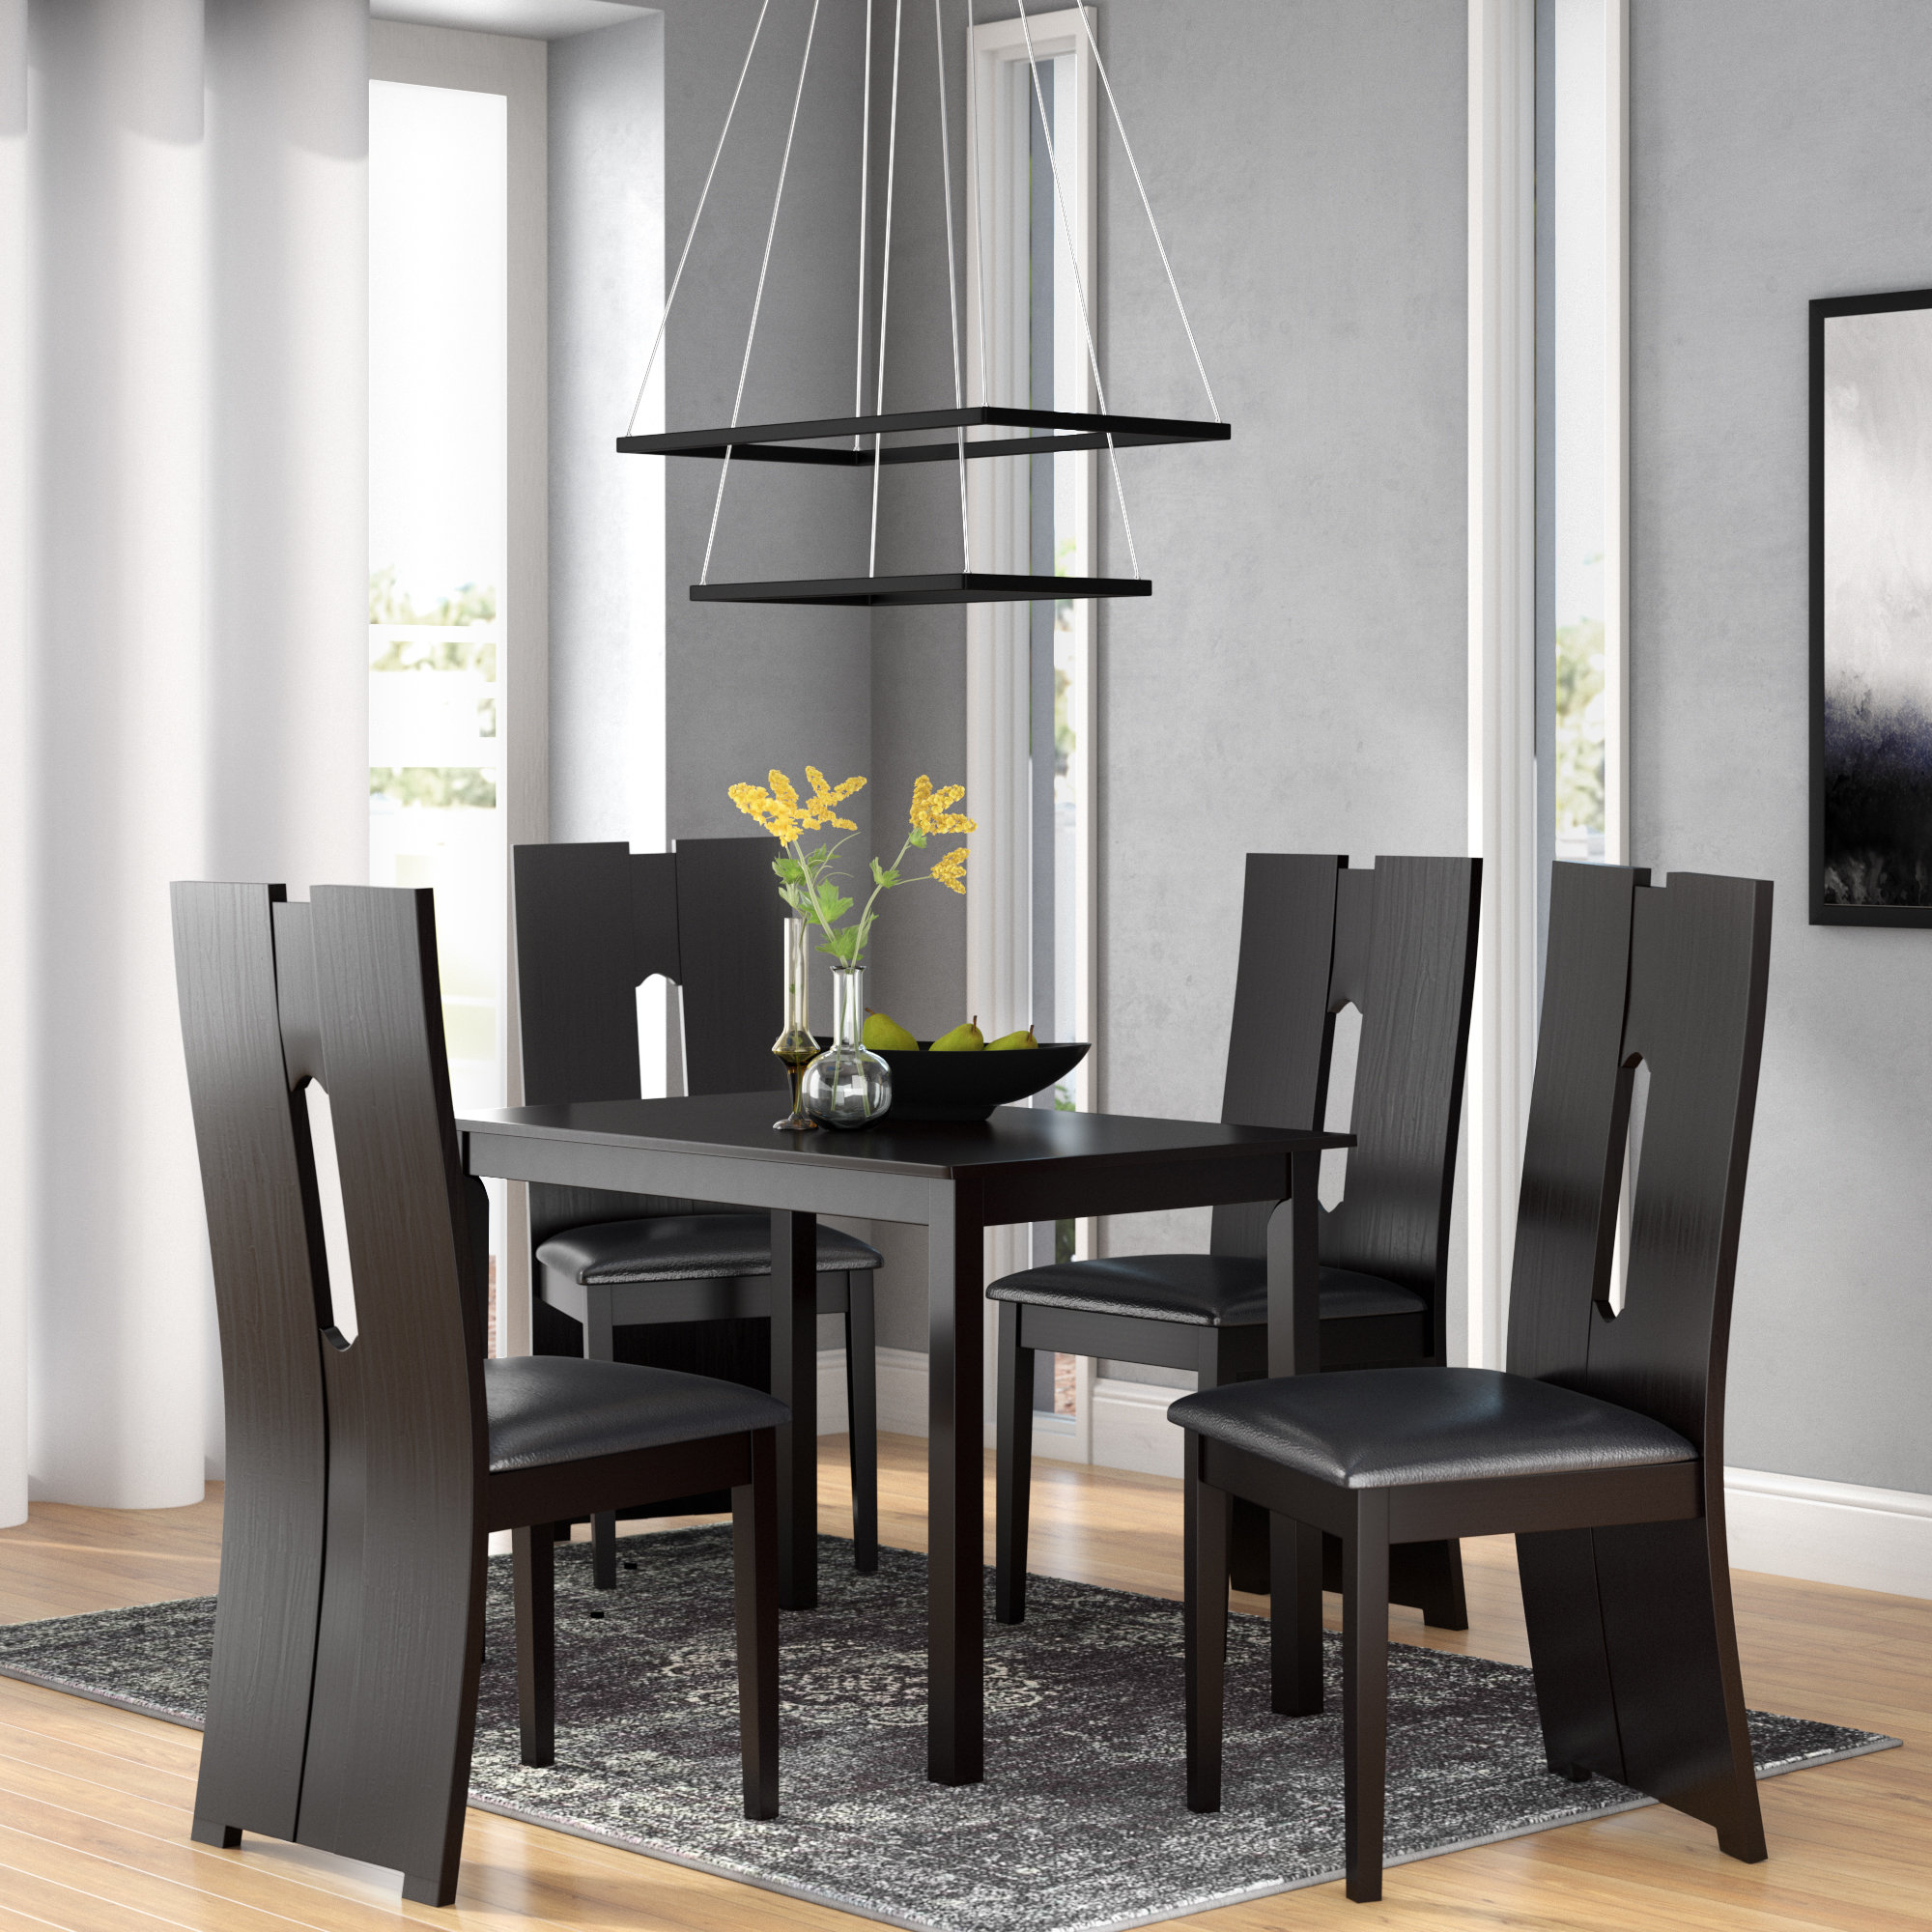 Current Orren Ellis Onsted Modern And Contemporary 5 Piece Breakfast Nook With Maynard 5 Piece Dining Sets (View 3 of 25)